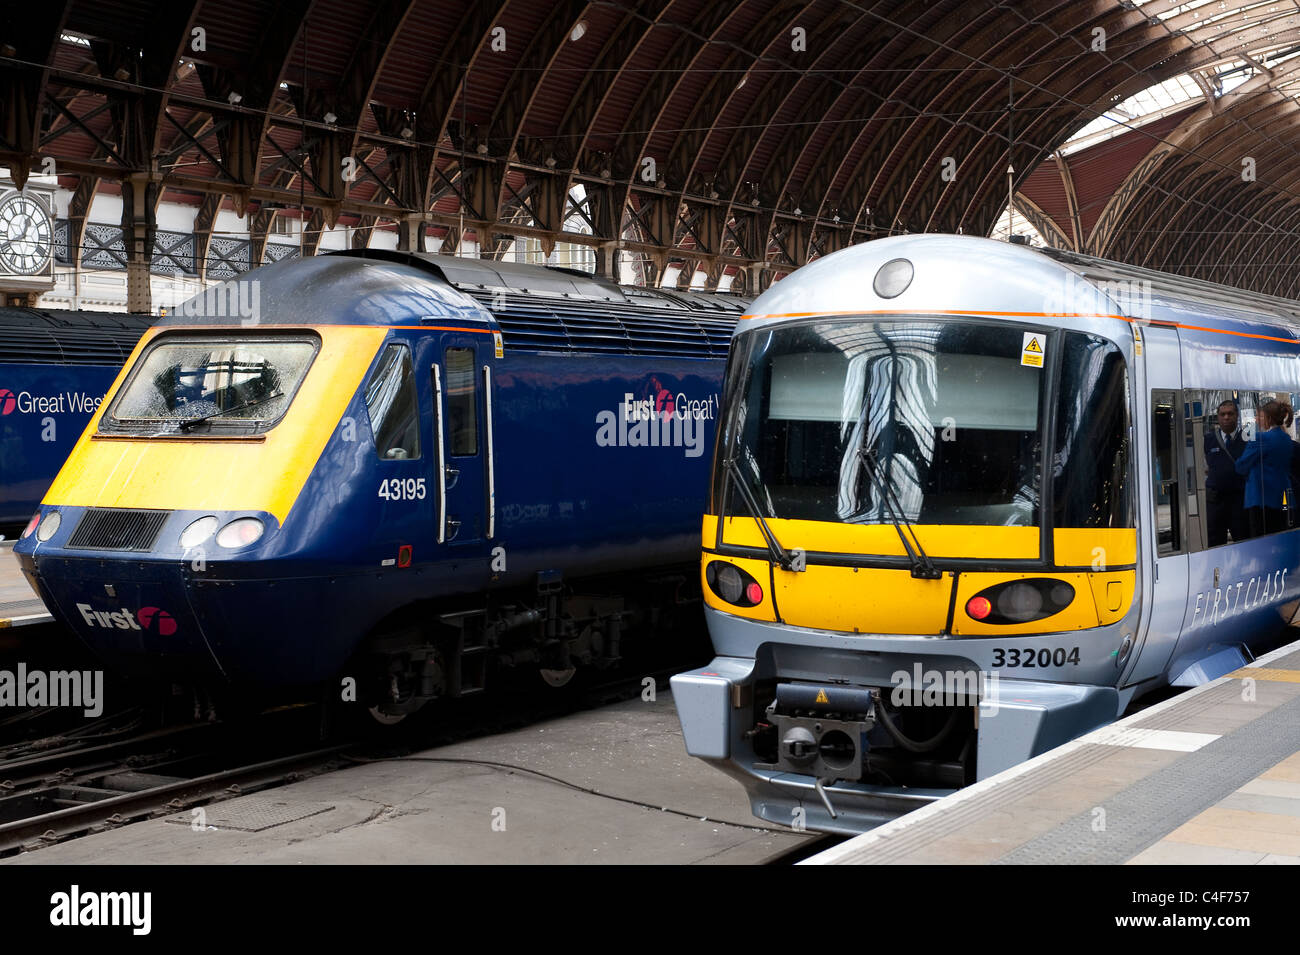 heathrow express class 332 and first great western class